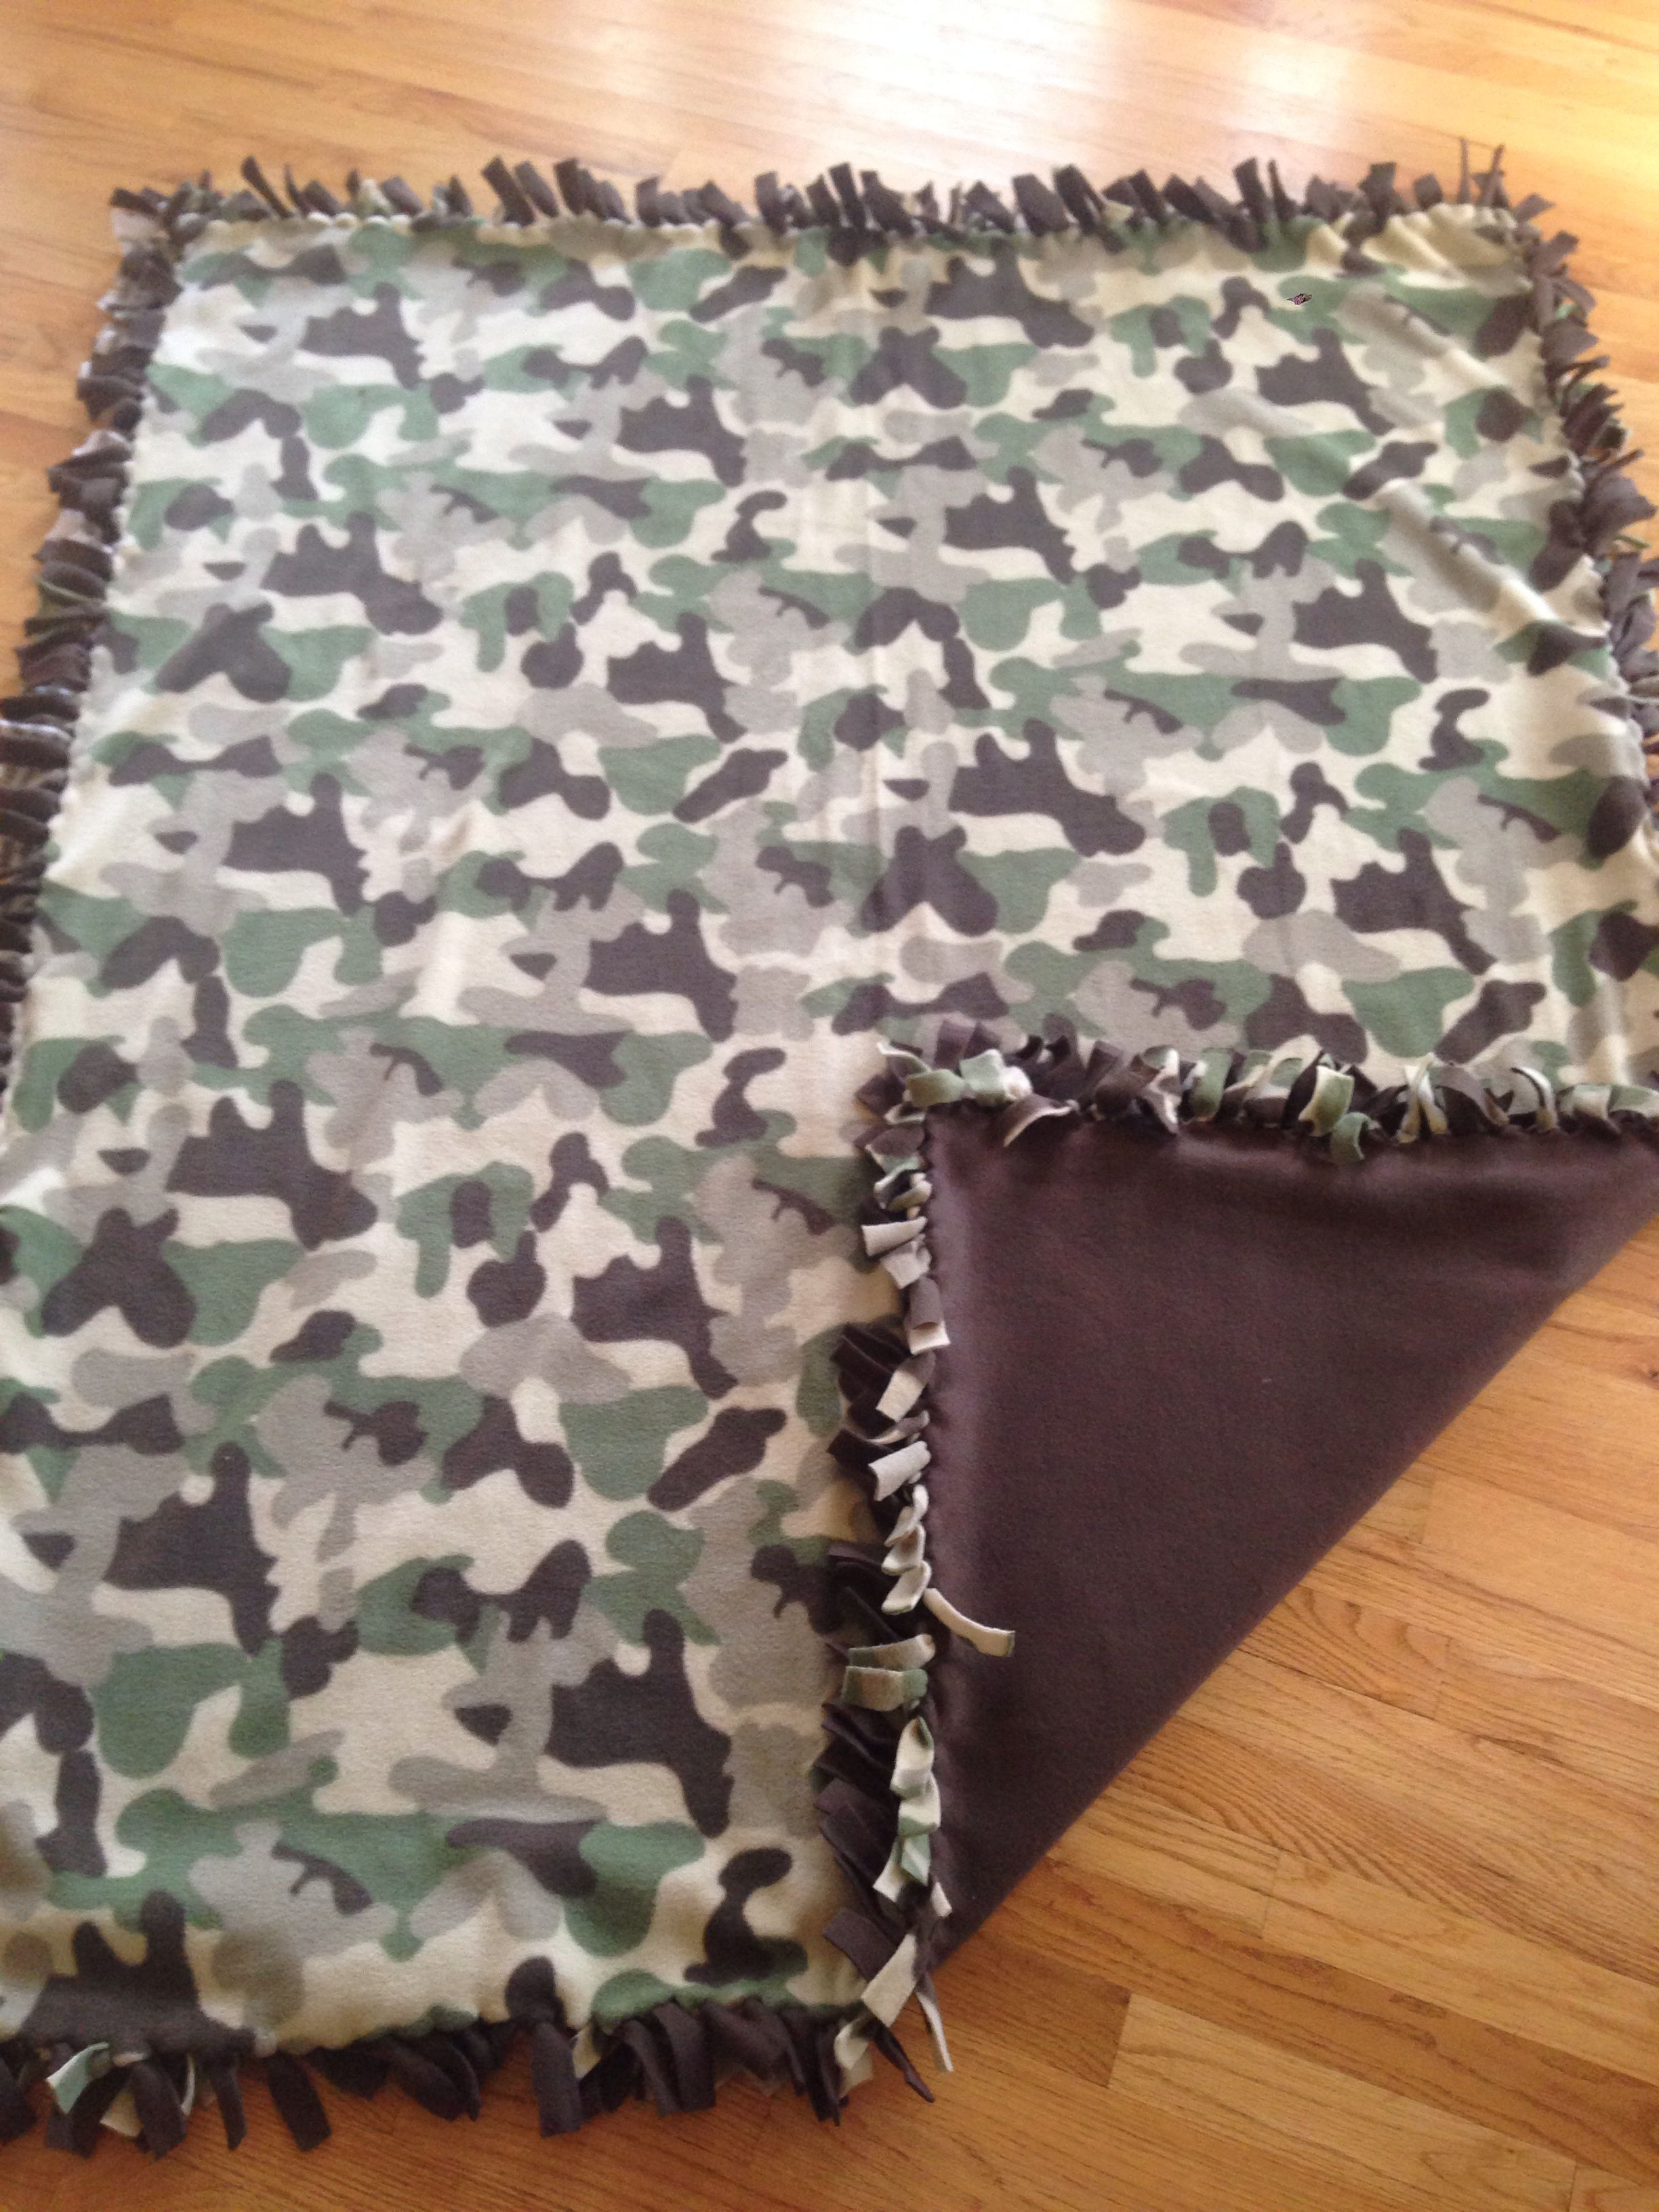 diy camo fleece blanket | diy fleece blankets | pinterest | blanket